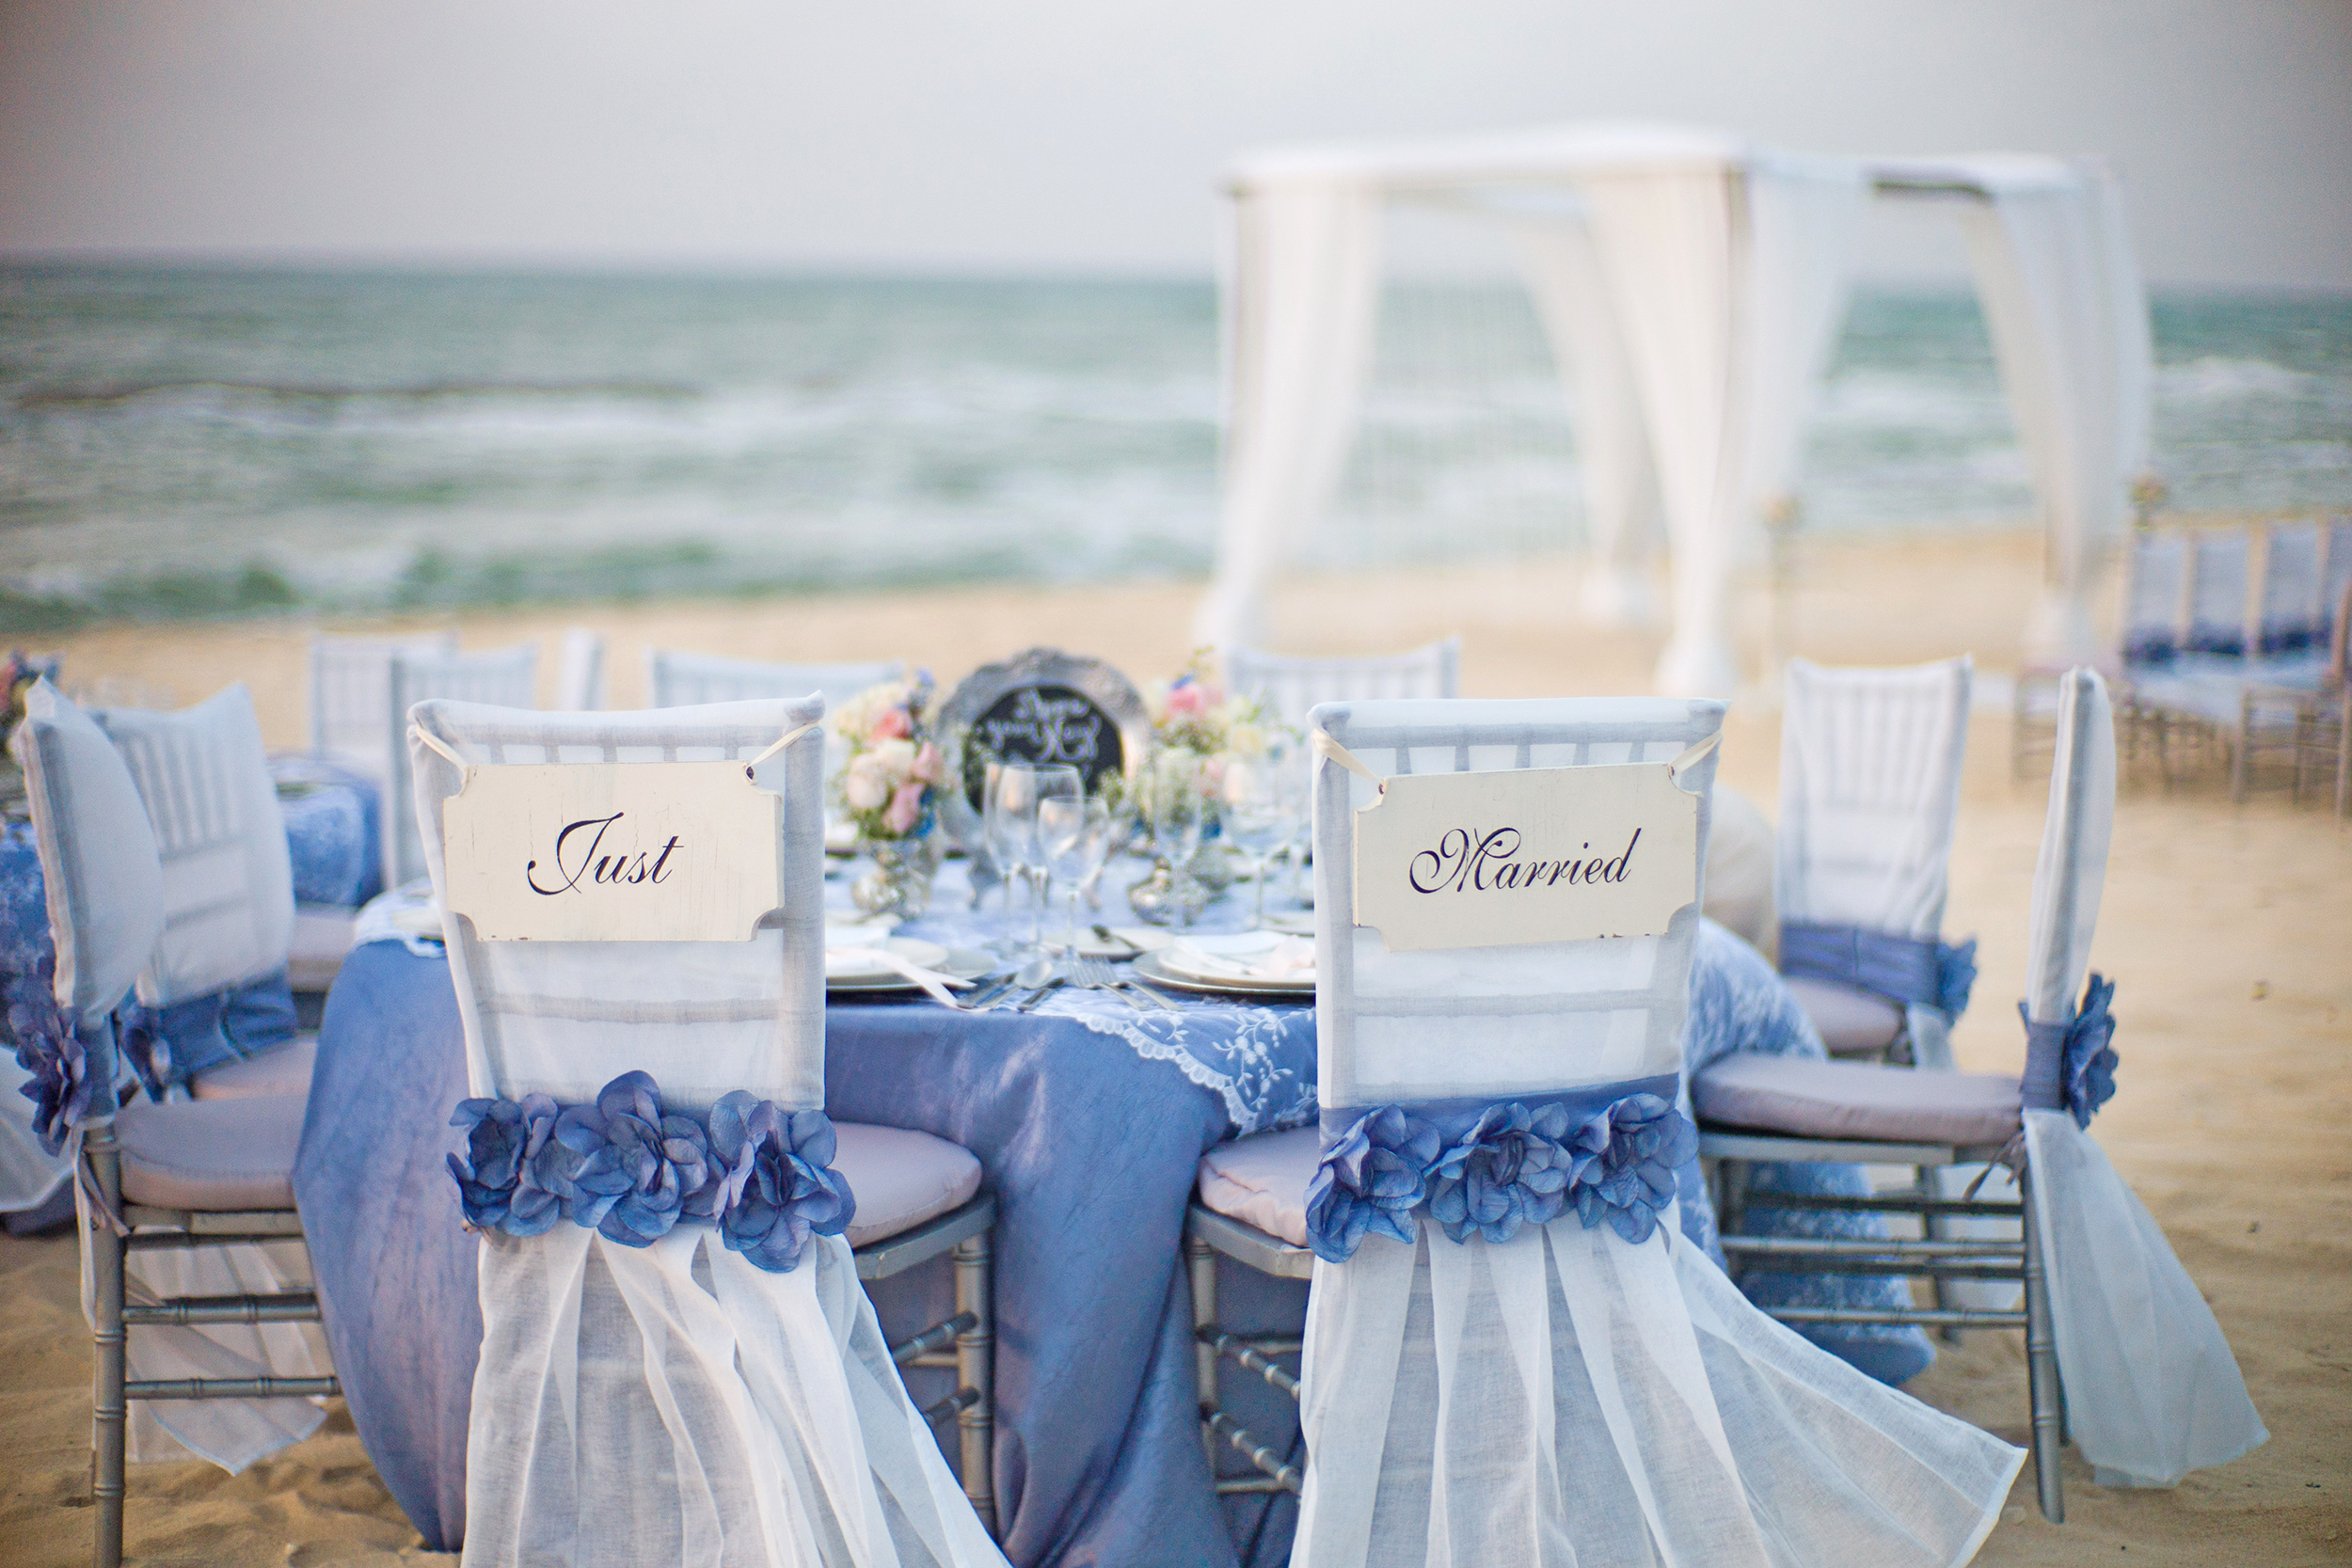 karisma7 Vintage Elegance Ceremony with Chair Signs and Ceremony.jpg